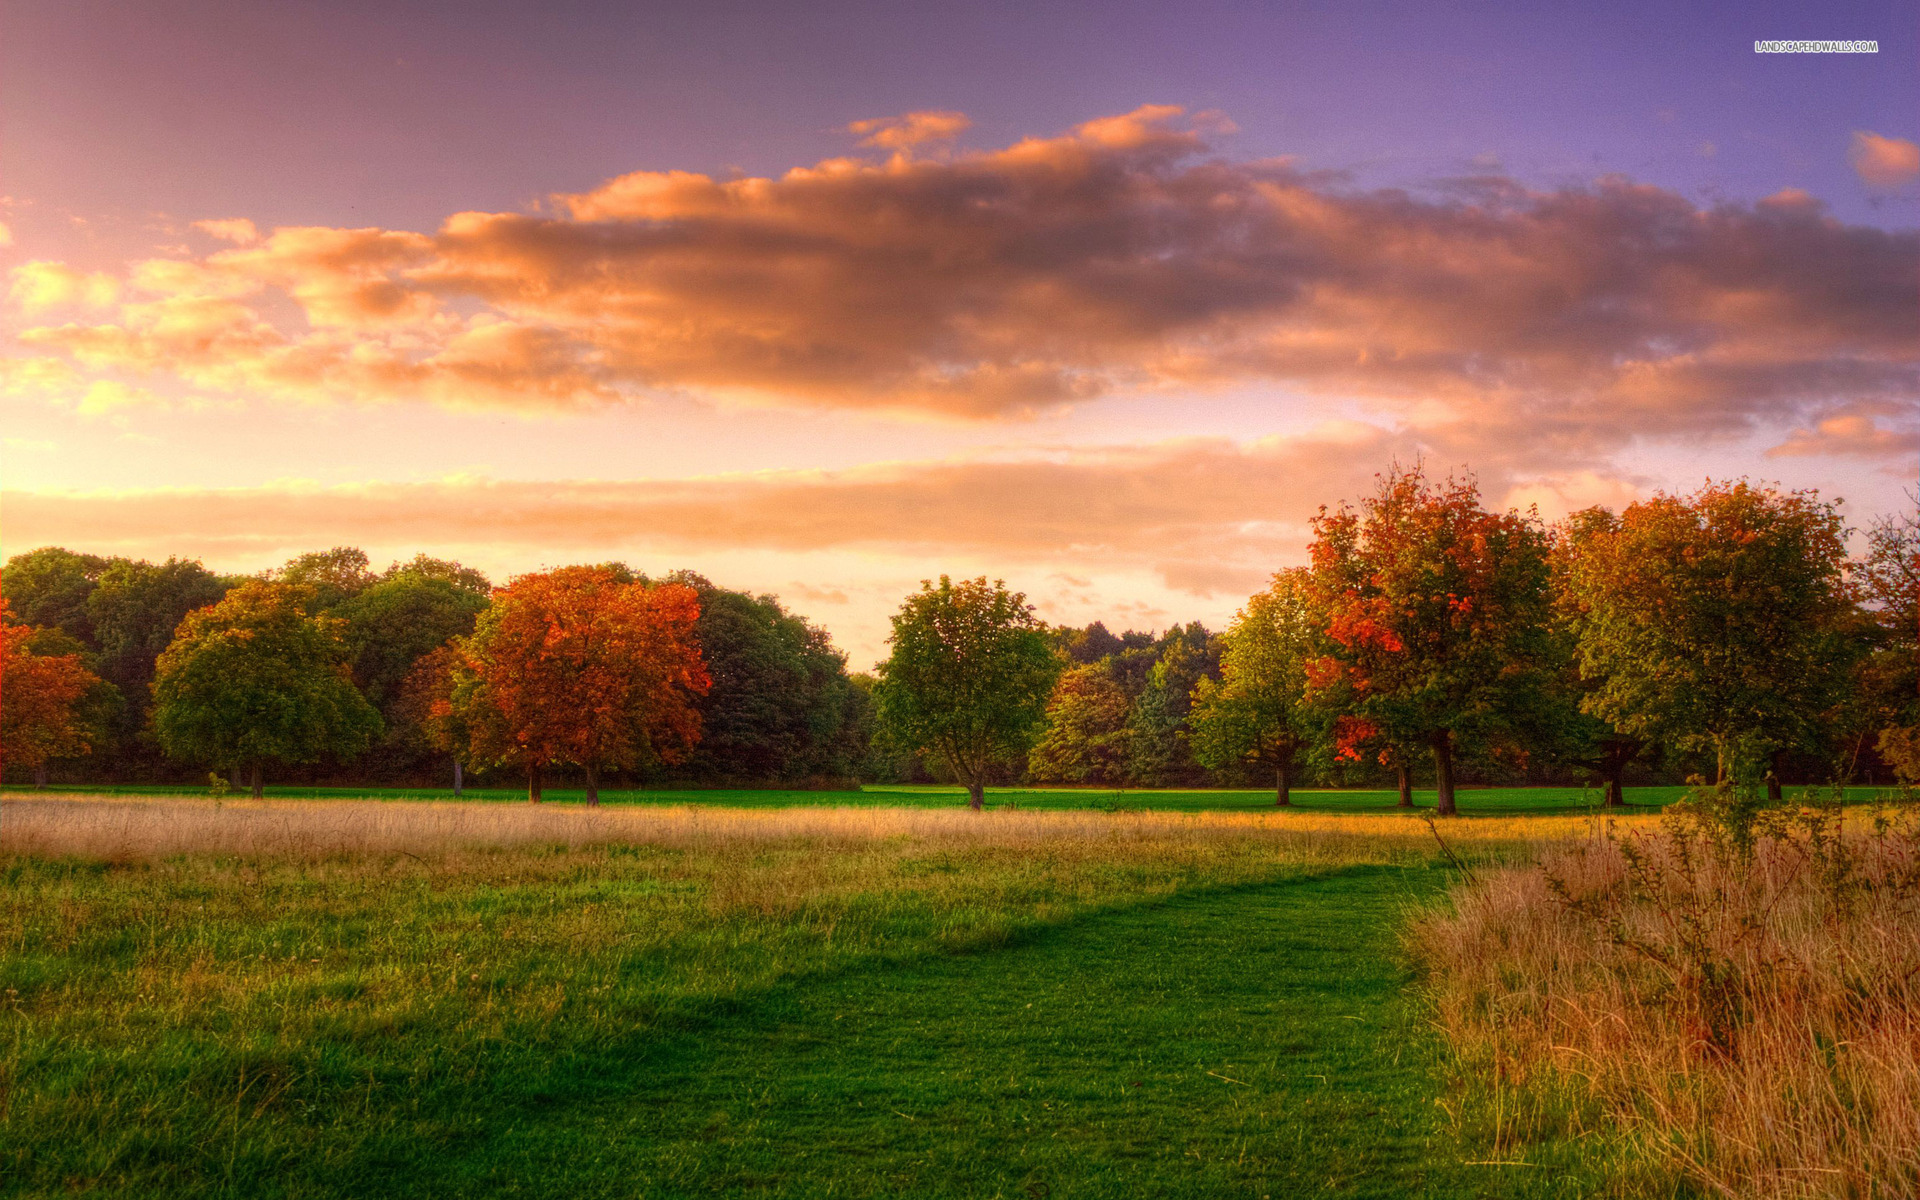 Fall Harvest Desktop Wallpaper Trees Grass Field Cloud Sunset Wallpapers Trees Grass